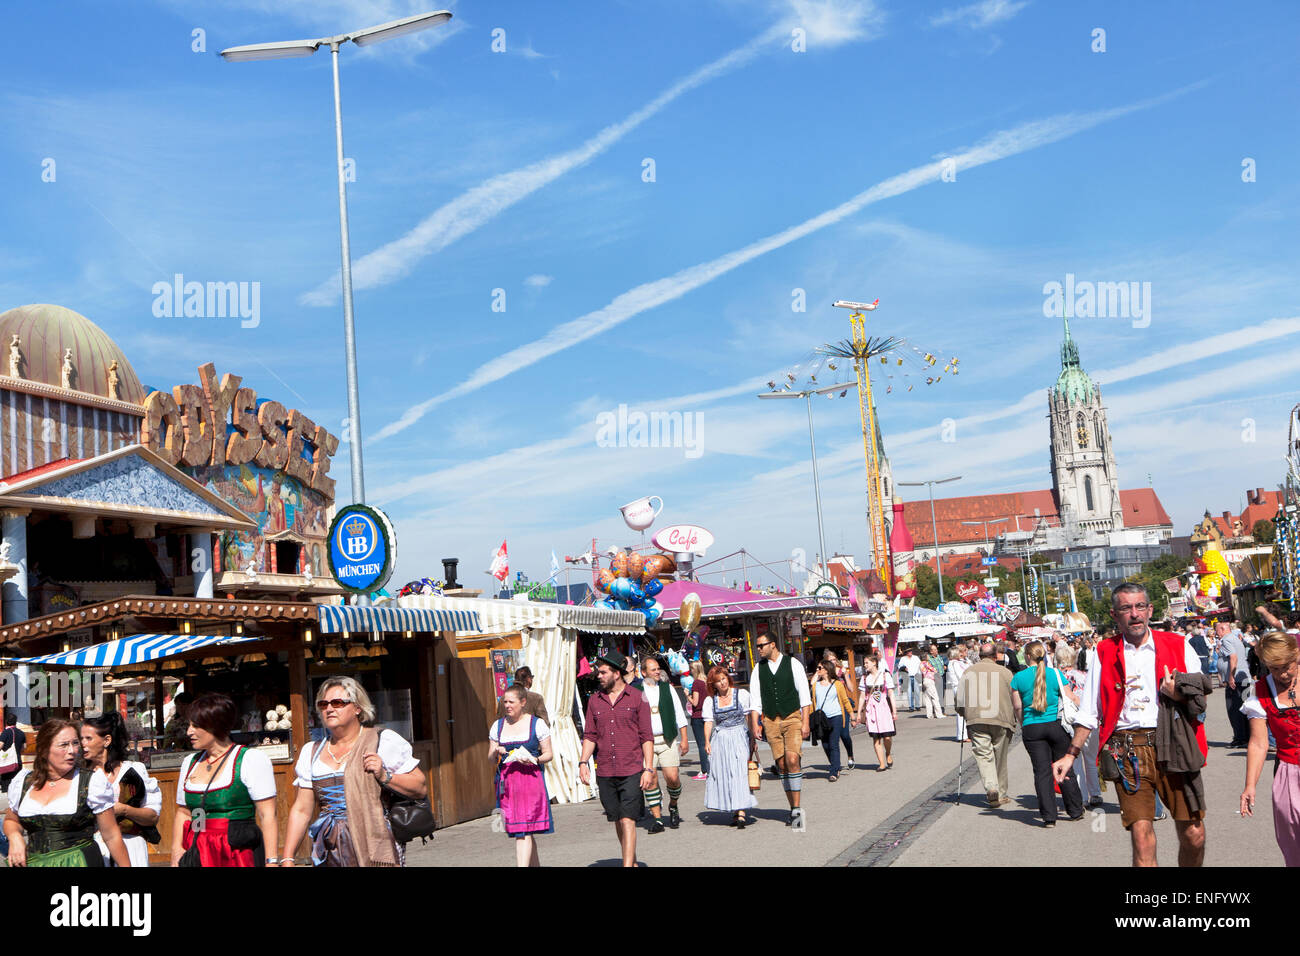 Visitors walk in fine weather on the Wiesn Octoberfest - Stock Image